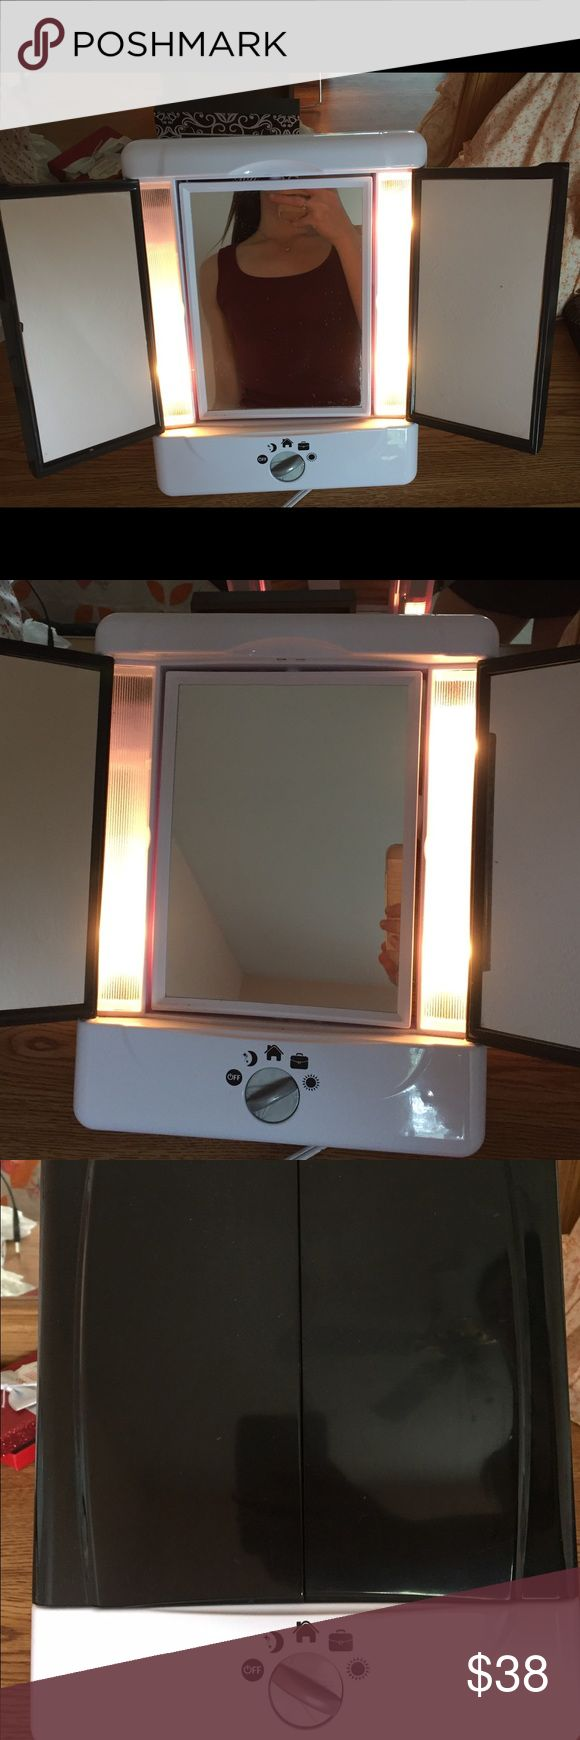 Conair Double Sided Lighted Vanity Mirror Conair - Double Sided Lighted Vanity Mirror - 4 settings conair Makeup